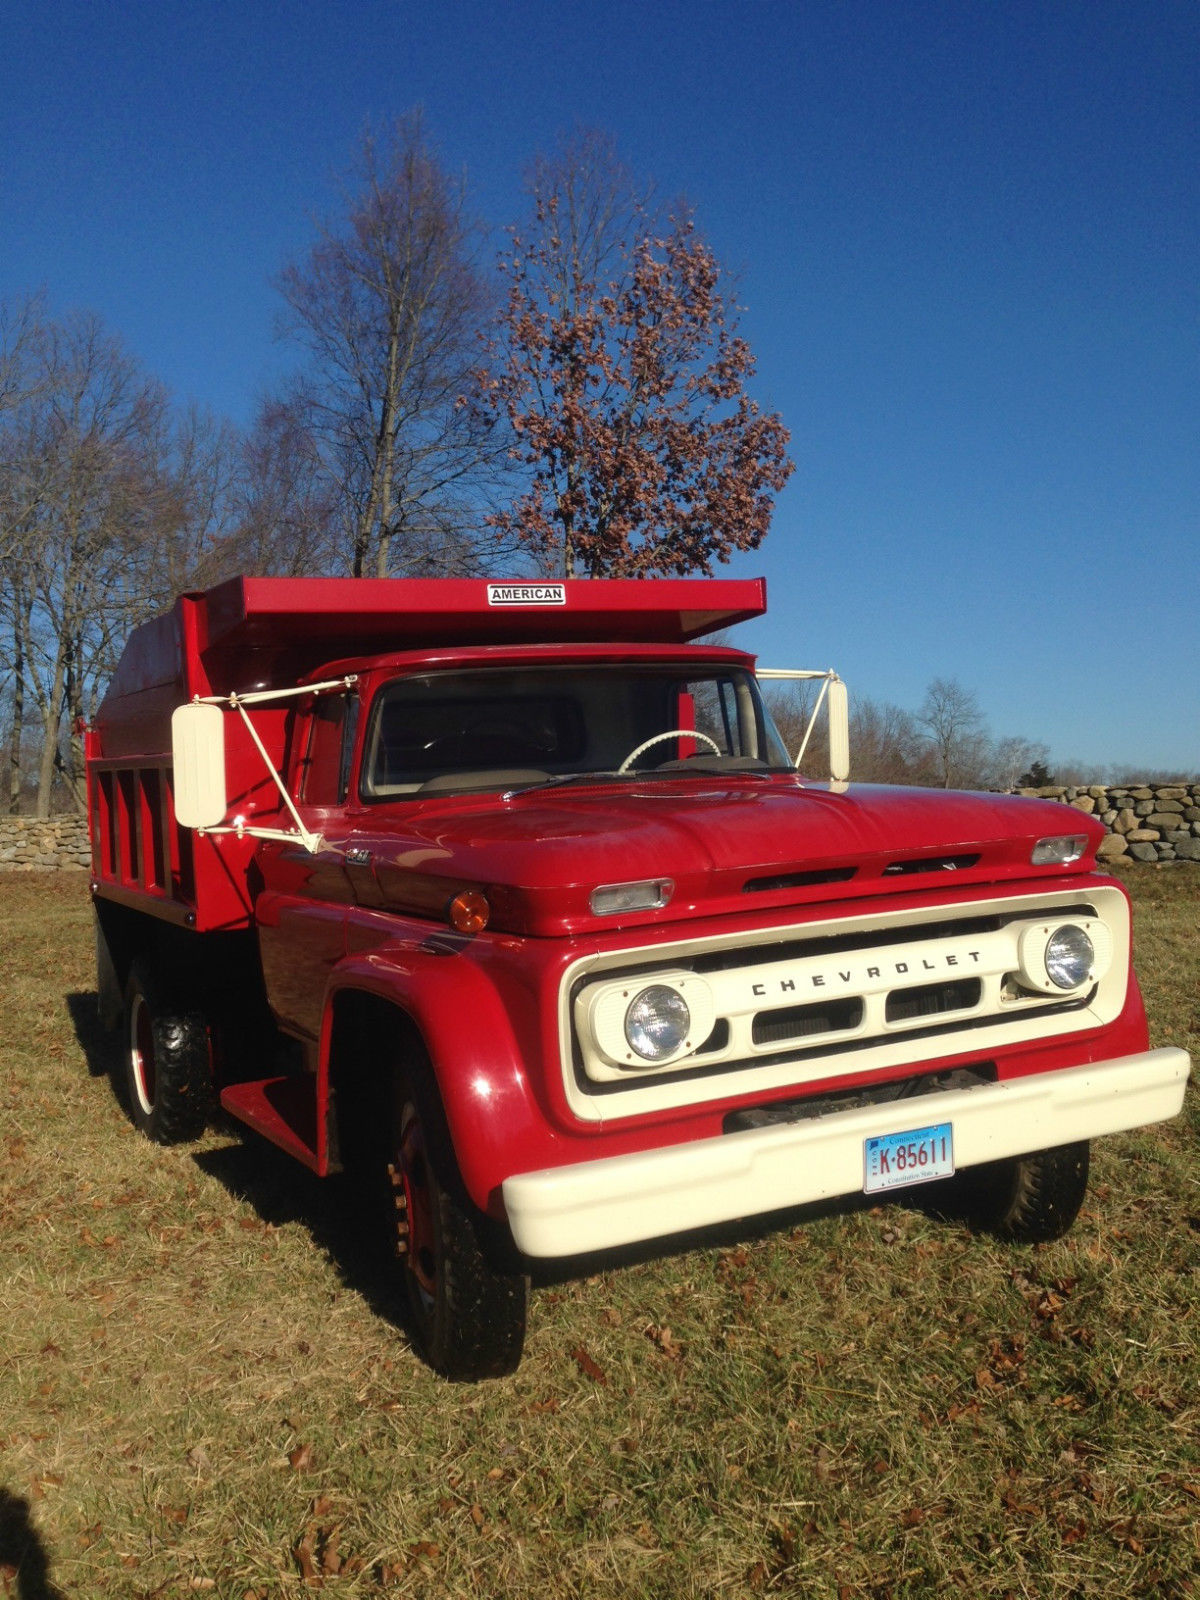 1962 Chevy Dump Truckexcellent Condition5329 Original Miles6 1954 Ford Truck Chevrolet Other C6